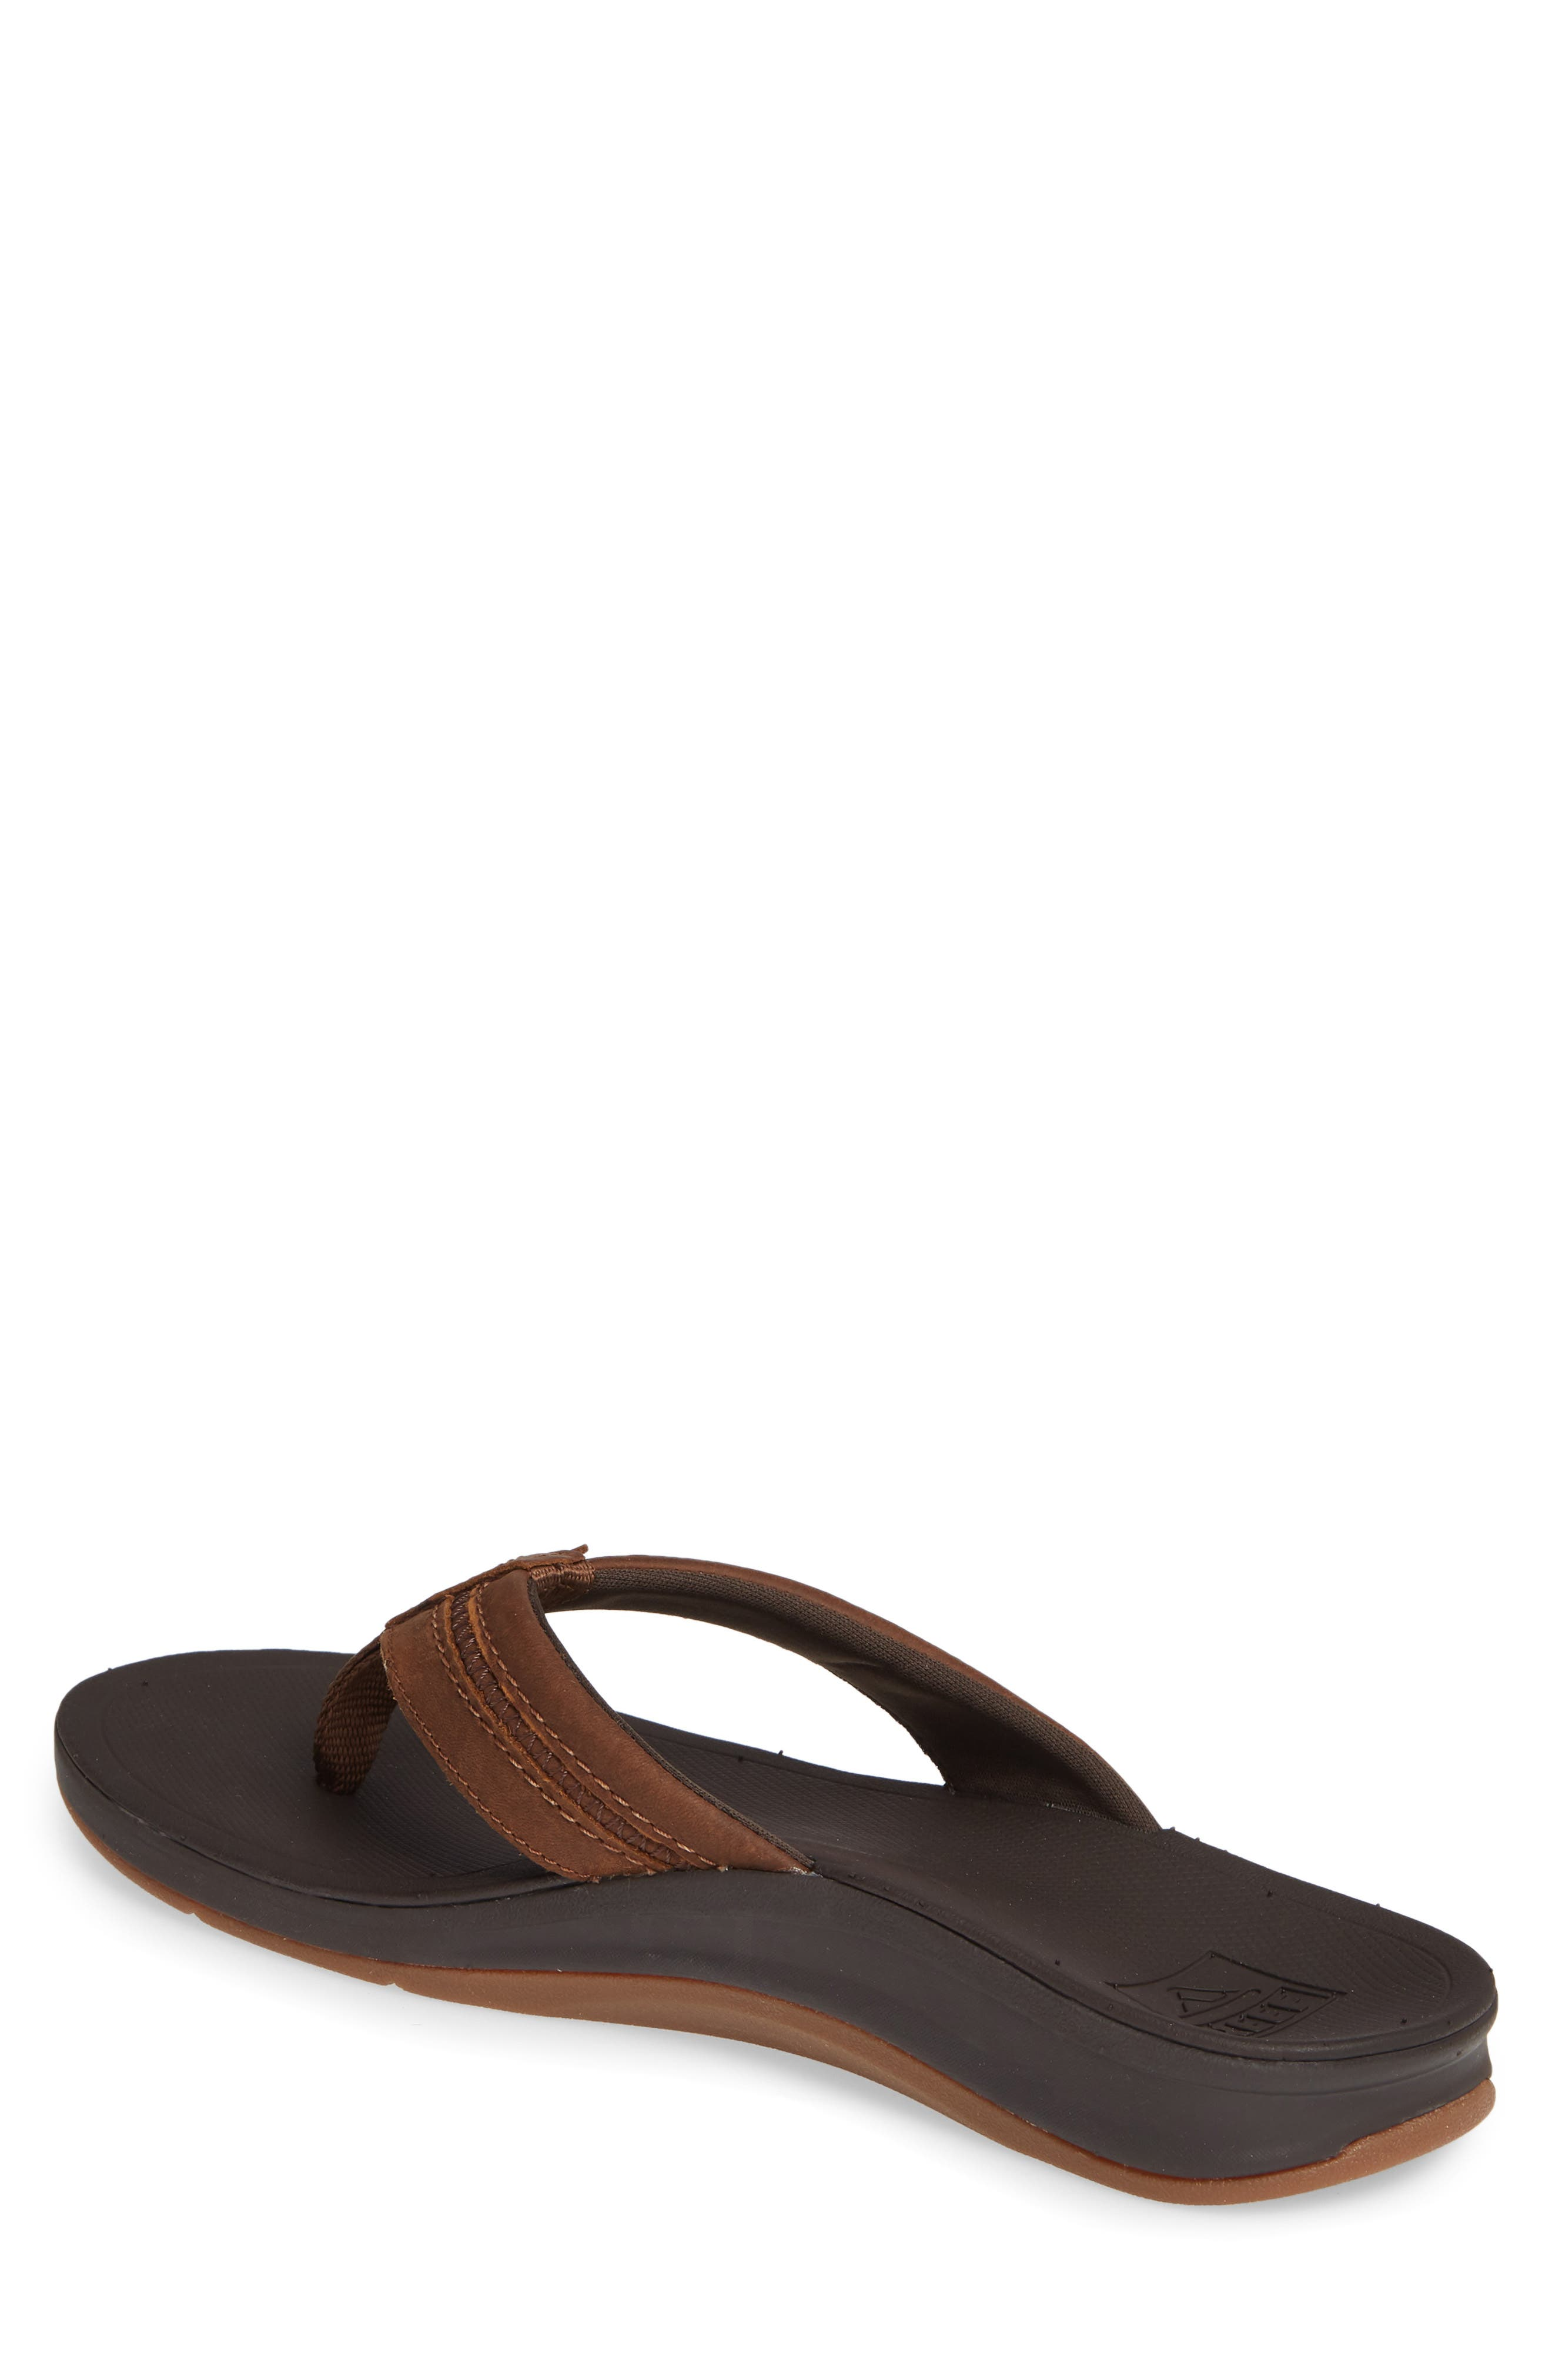 REEF, Ortho Bounce Coast Flip Flop, Alternate thumbnail 2, color, BROWN